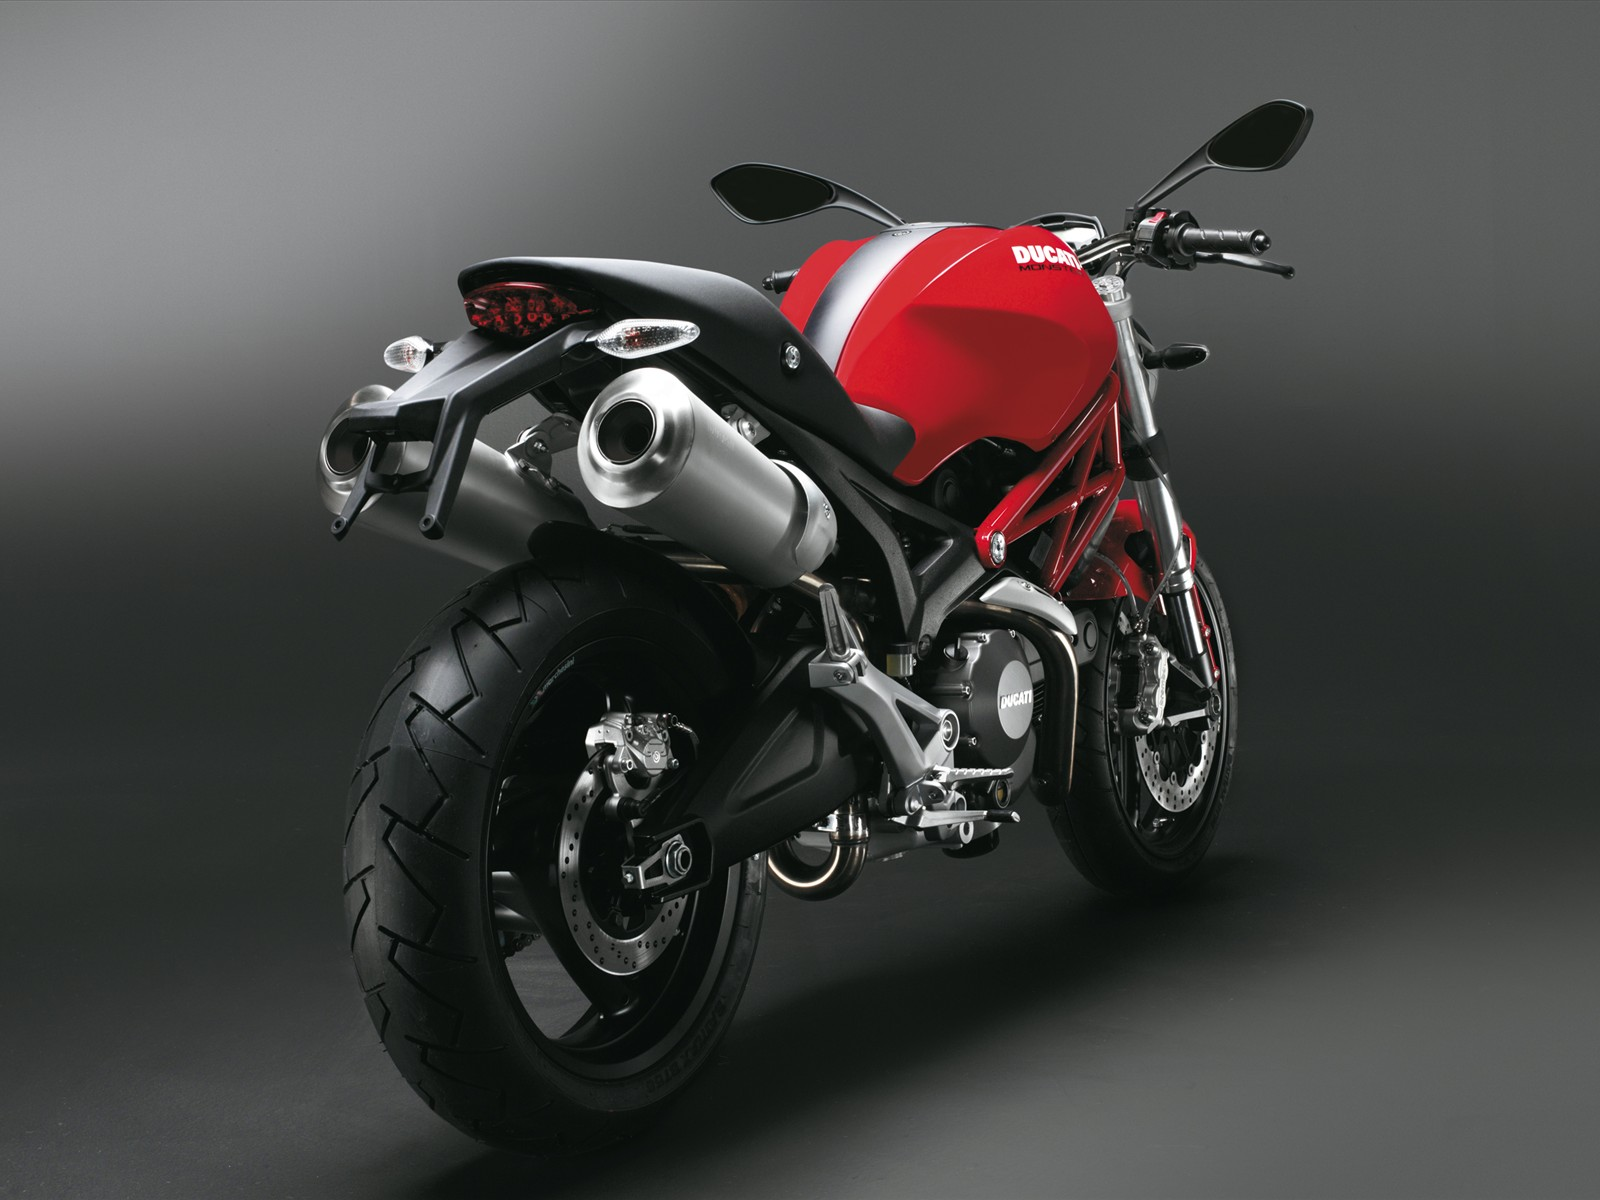 motorcycles ducati monster 696 hd quality images. Black Bedroom Furniture Sets. Home Design Ideas